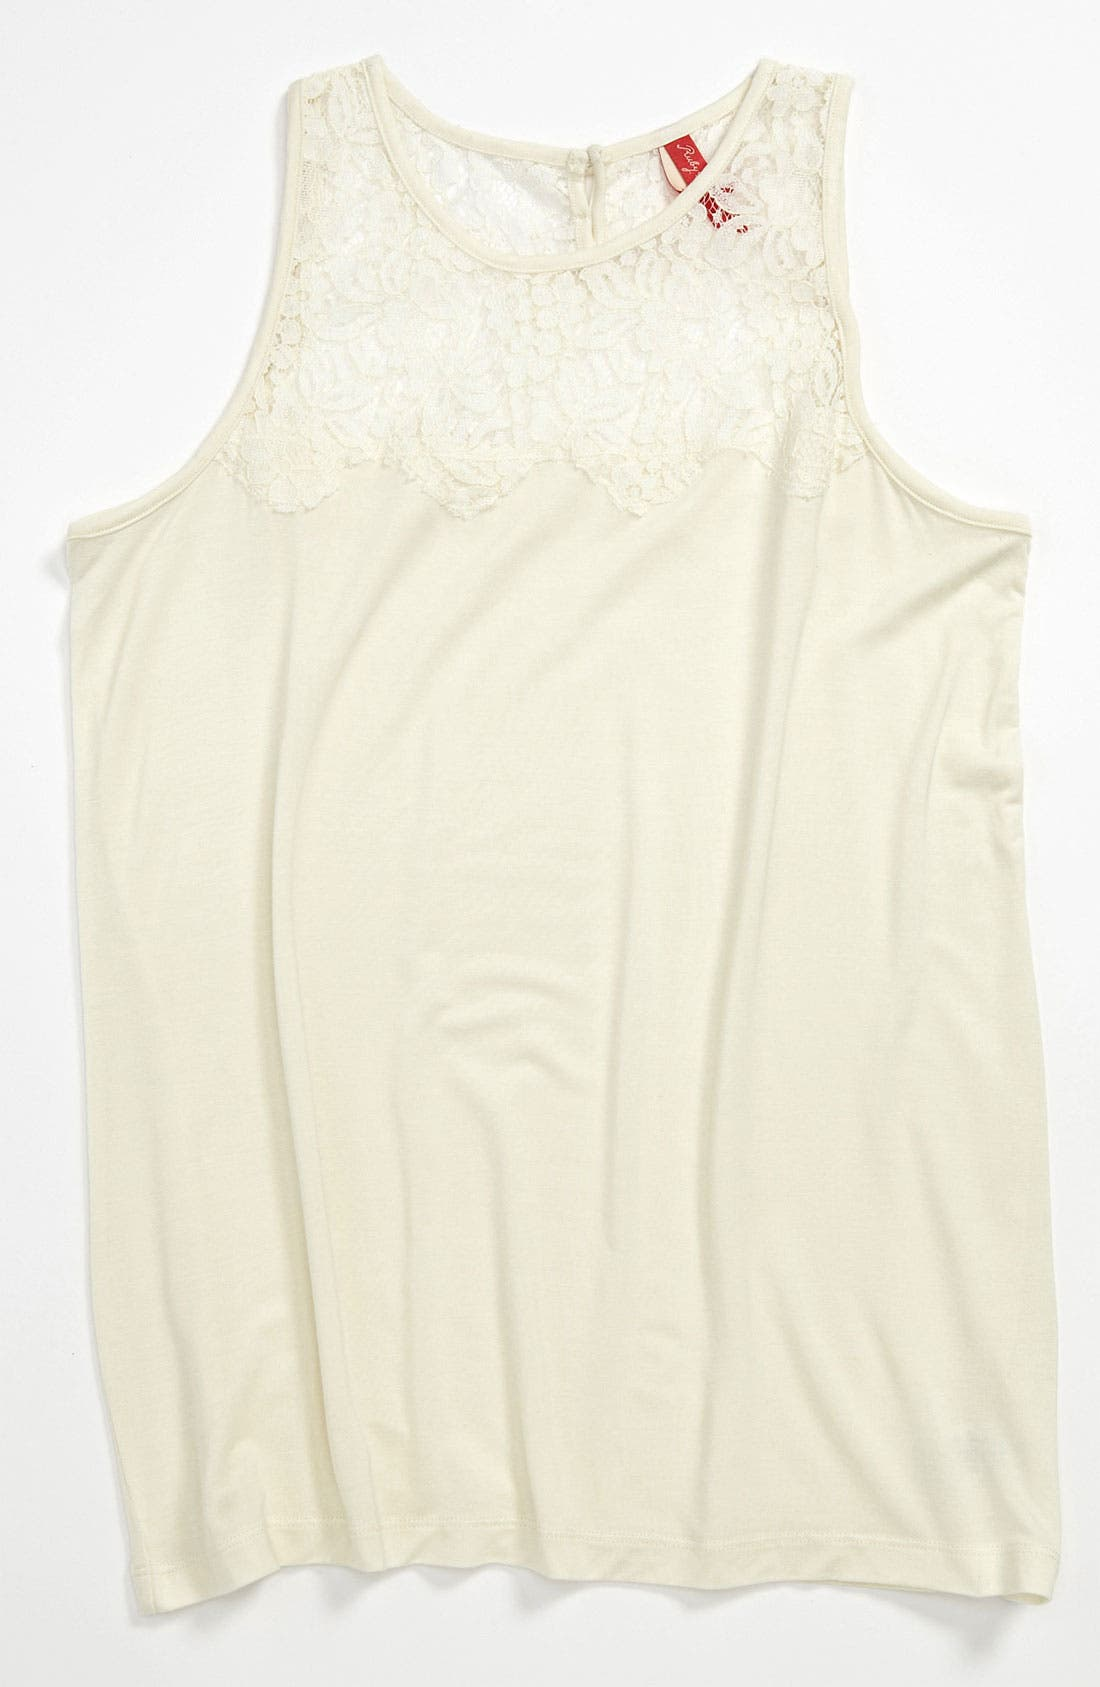 Alternate Image 1 Selected - Ruby & Bloom 'Genevieve' Tank Top (Big Girls)